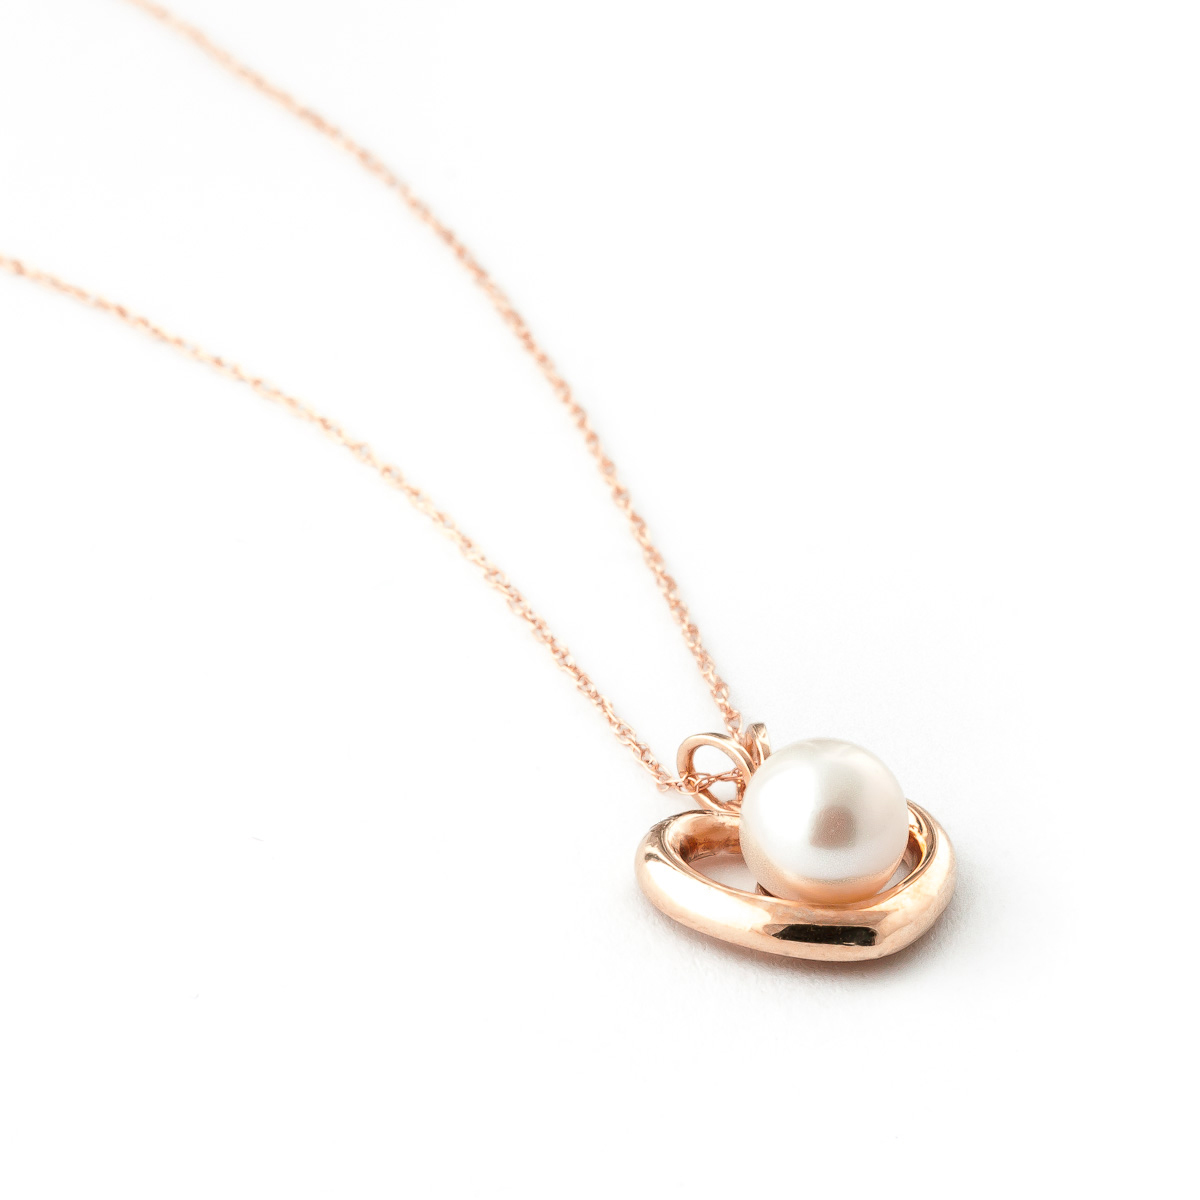 Pearl heart pendant necklace 2 ct in 9ct rose gold 5379r qp pearl heart pendant necklace 2 ct in 9ct rose gold aloadofball Image collections